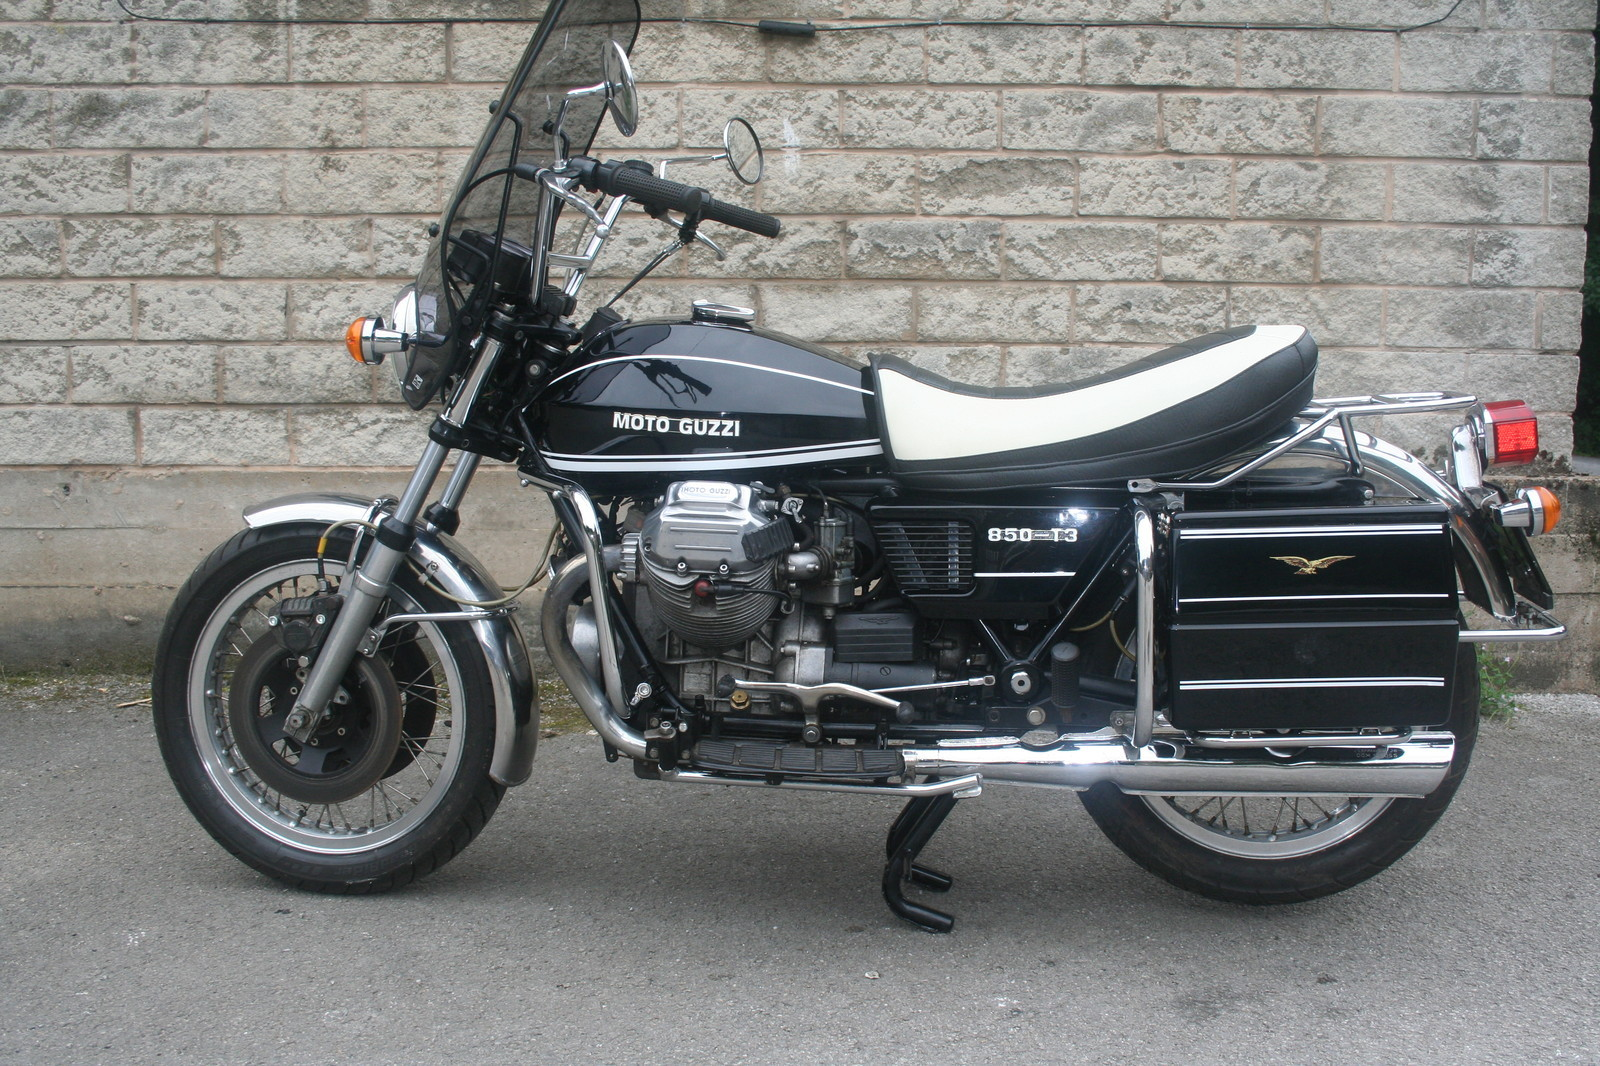 restored moto guzzi t3 california 1979 photographs at classic bikes restored bikes restored. Black Bedroom Furniture Sets. Home Design Ideas